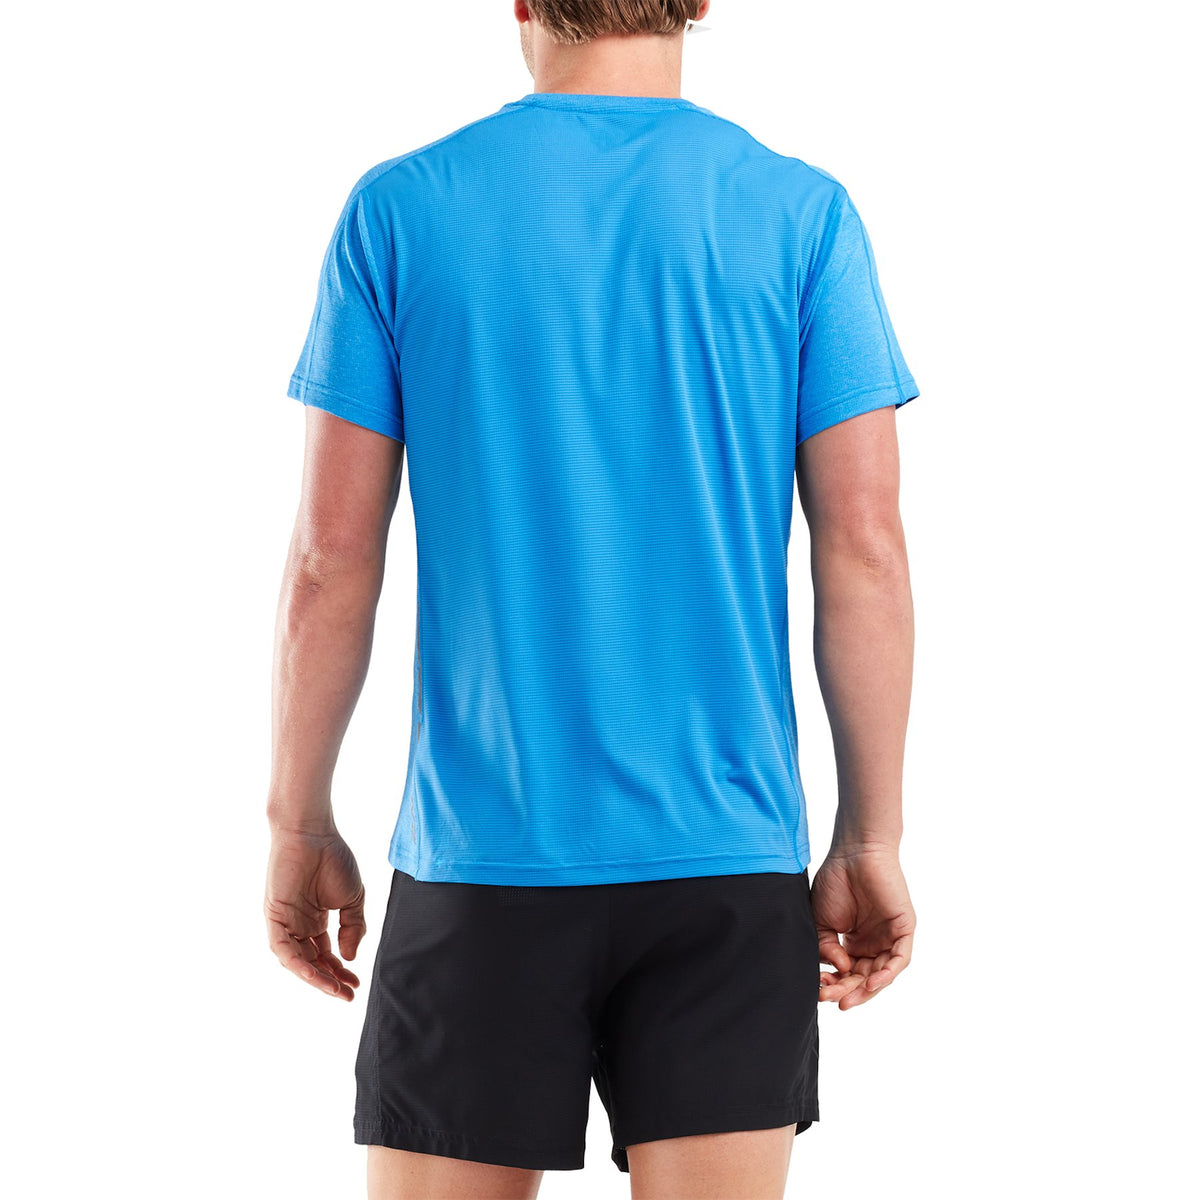 2XU Xvent G2 T-Shirt Mens - Sole Motive